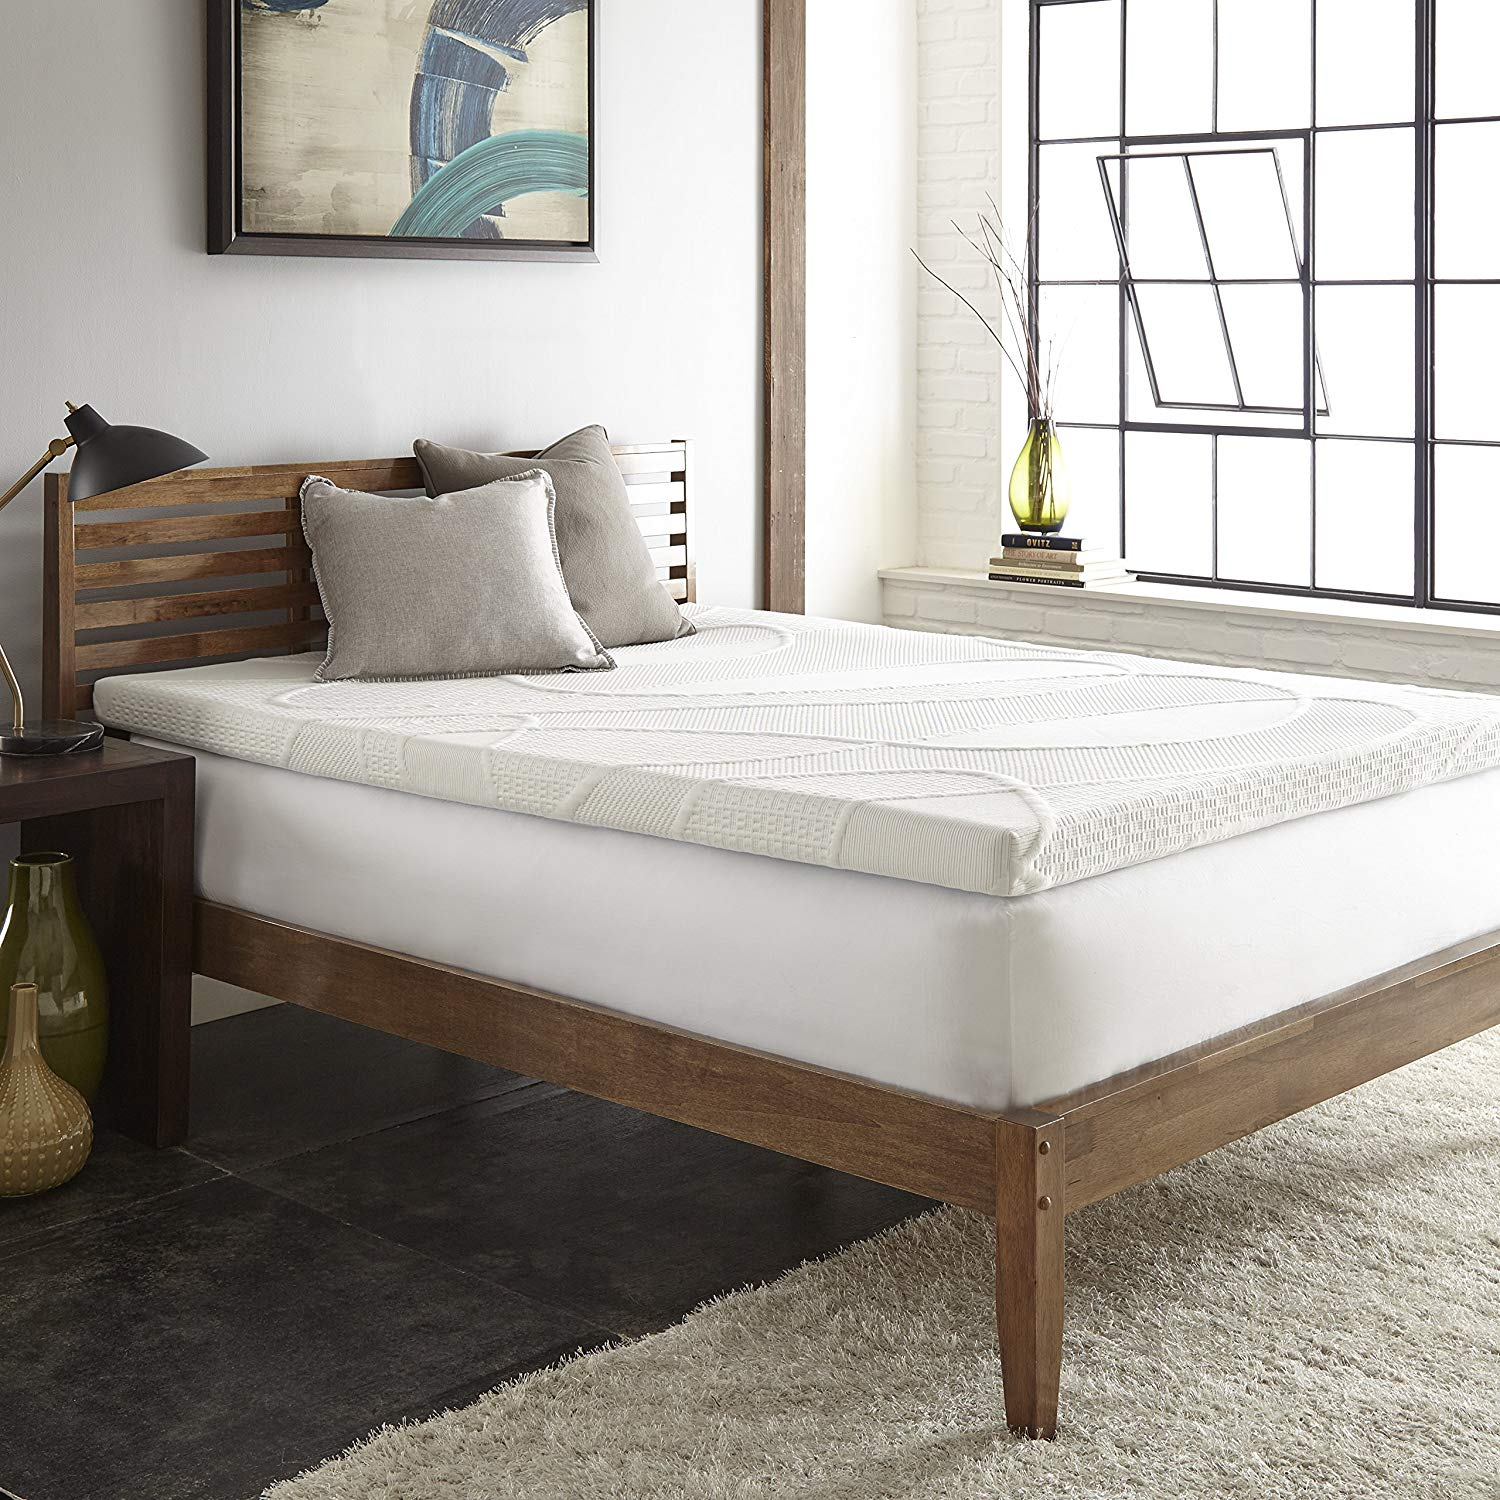 Perfect Cloud Best Mattress Topper for Side Sleepers review by www.dailysleep.org